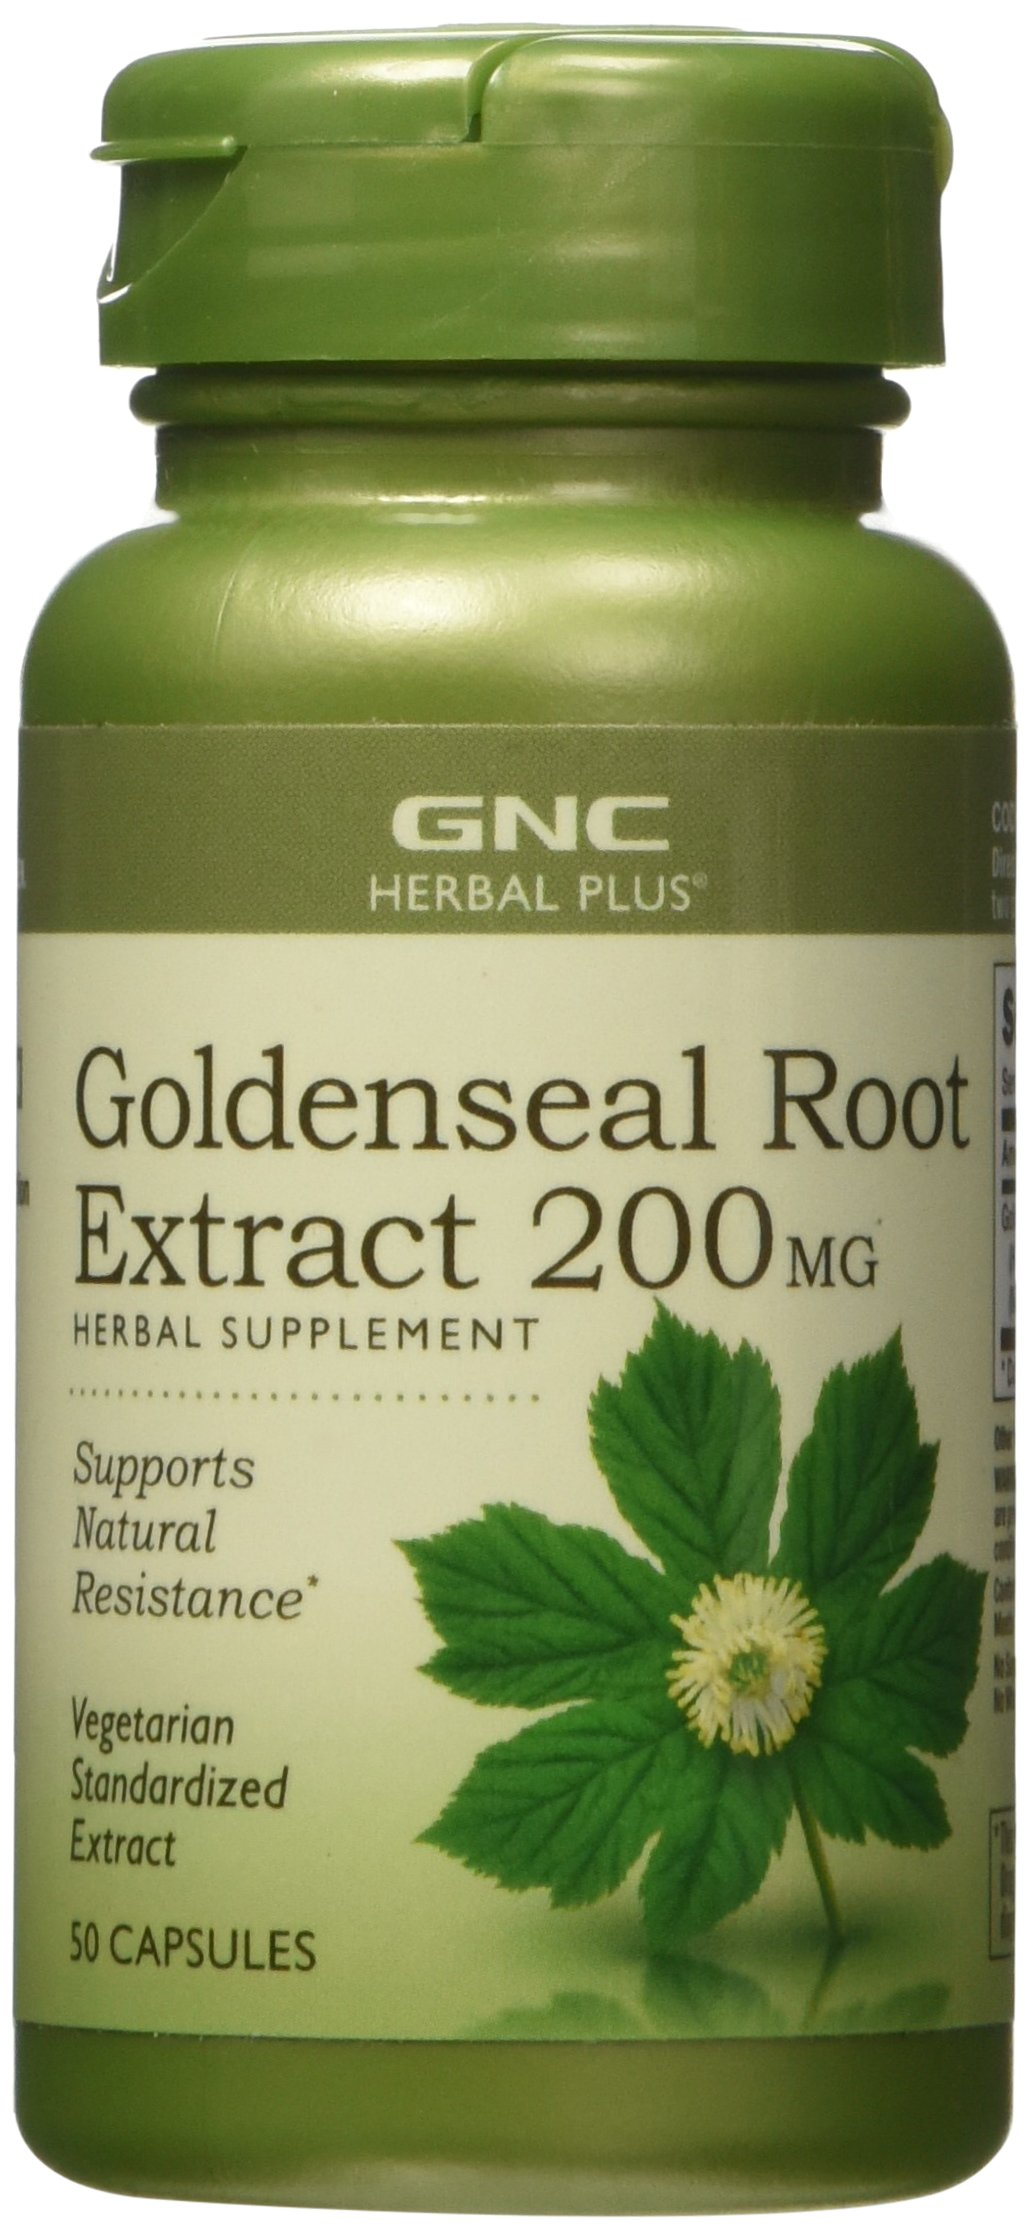 GNC Herbal Plus Goldenseal Root Extract 200mg, 50 Capsules, Supports Natural Resistance